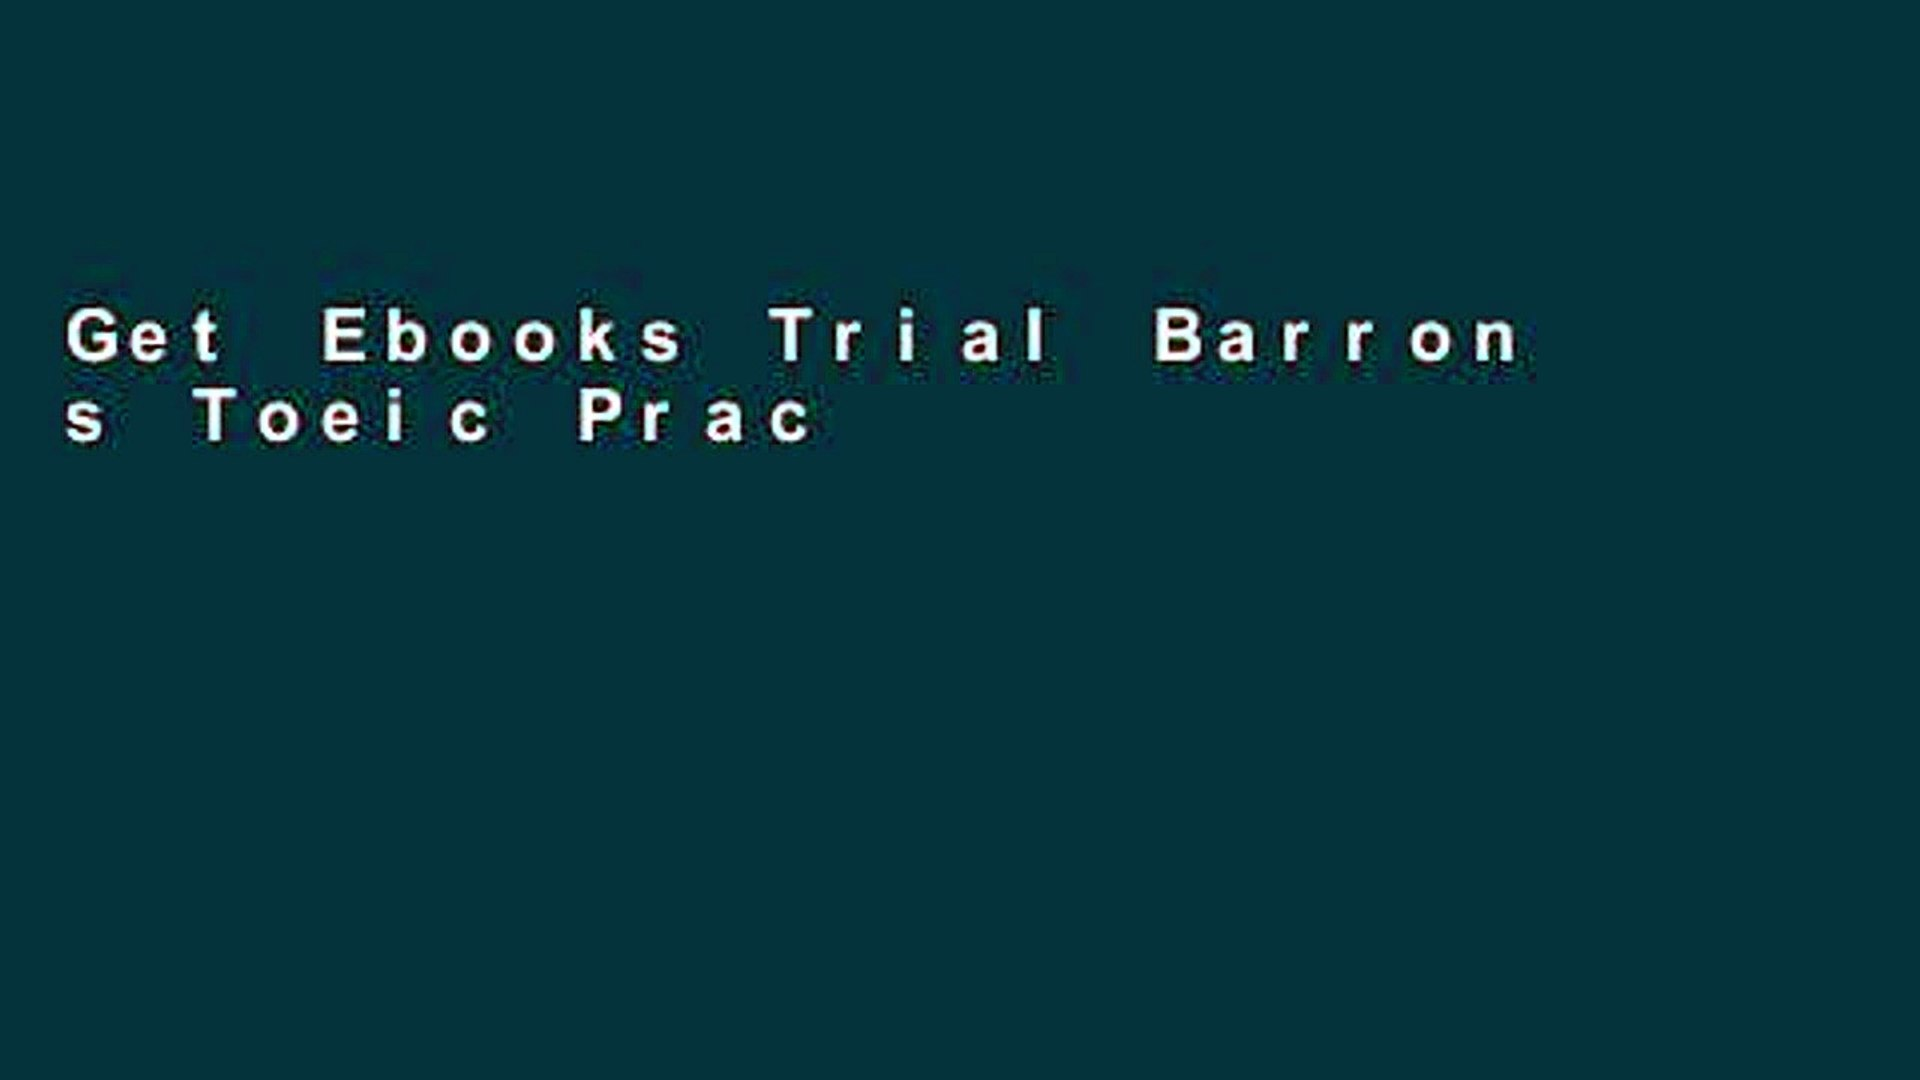 Get Ebooks Trial Barron s Toeic Practice Exams with MP3 CD, 3rd Edition (Book   MP3 CD) P-DF Reading